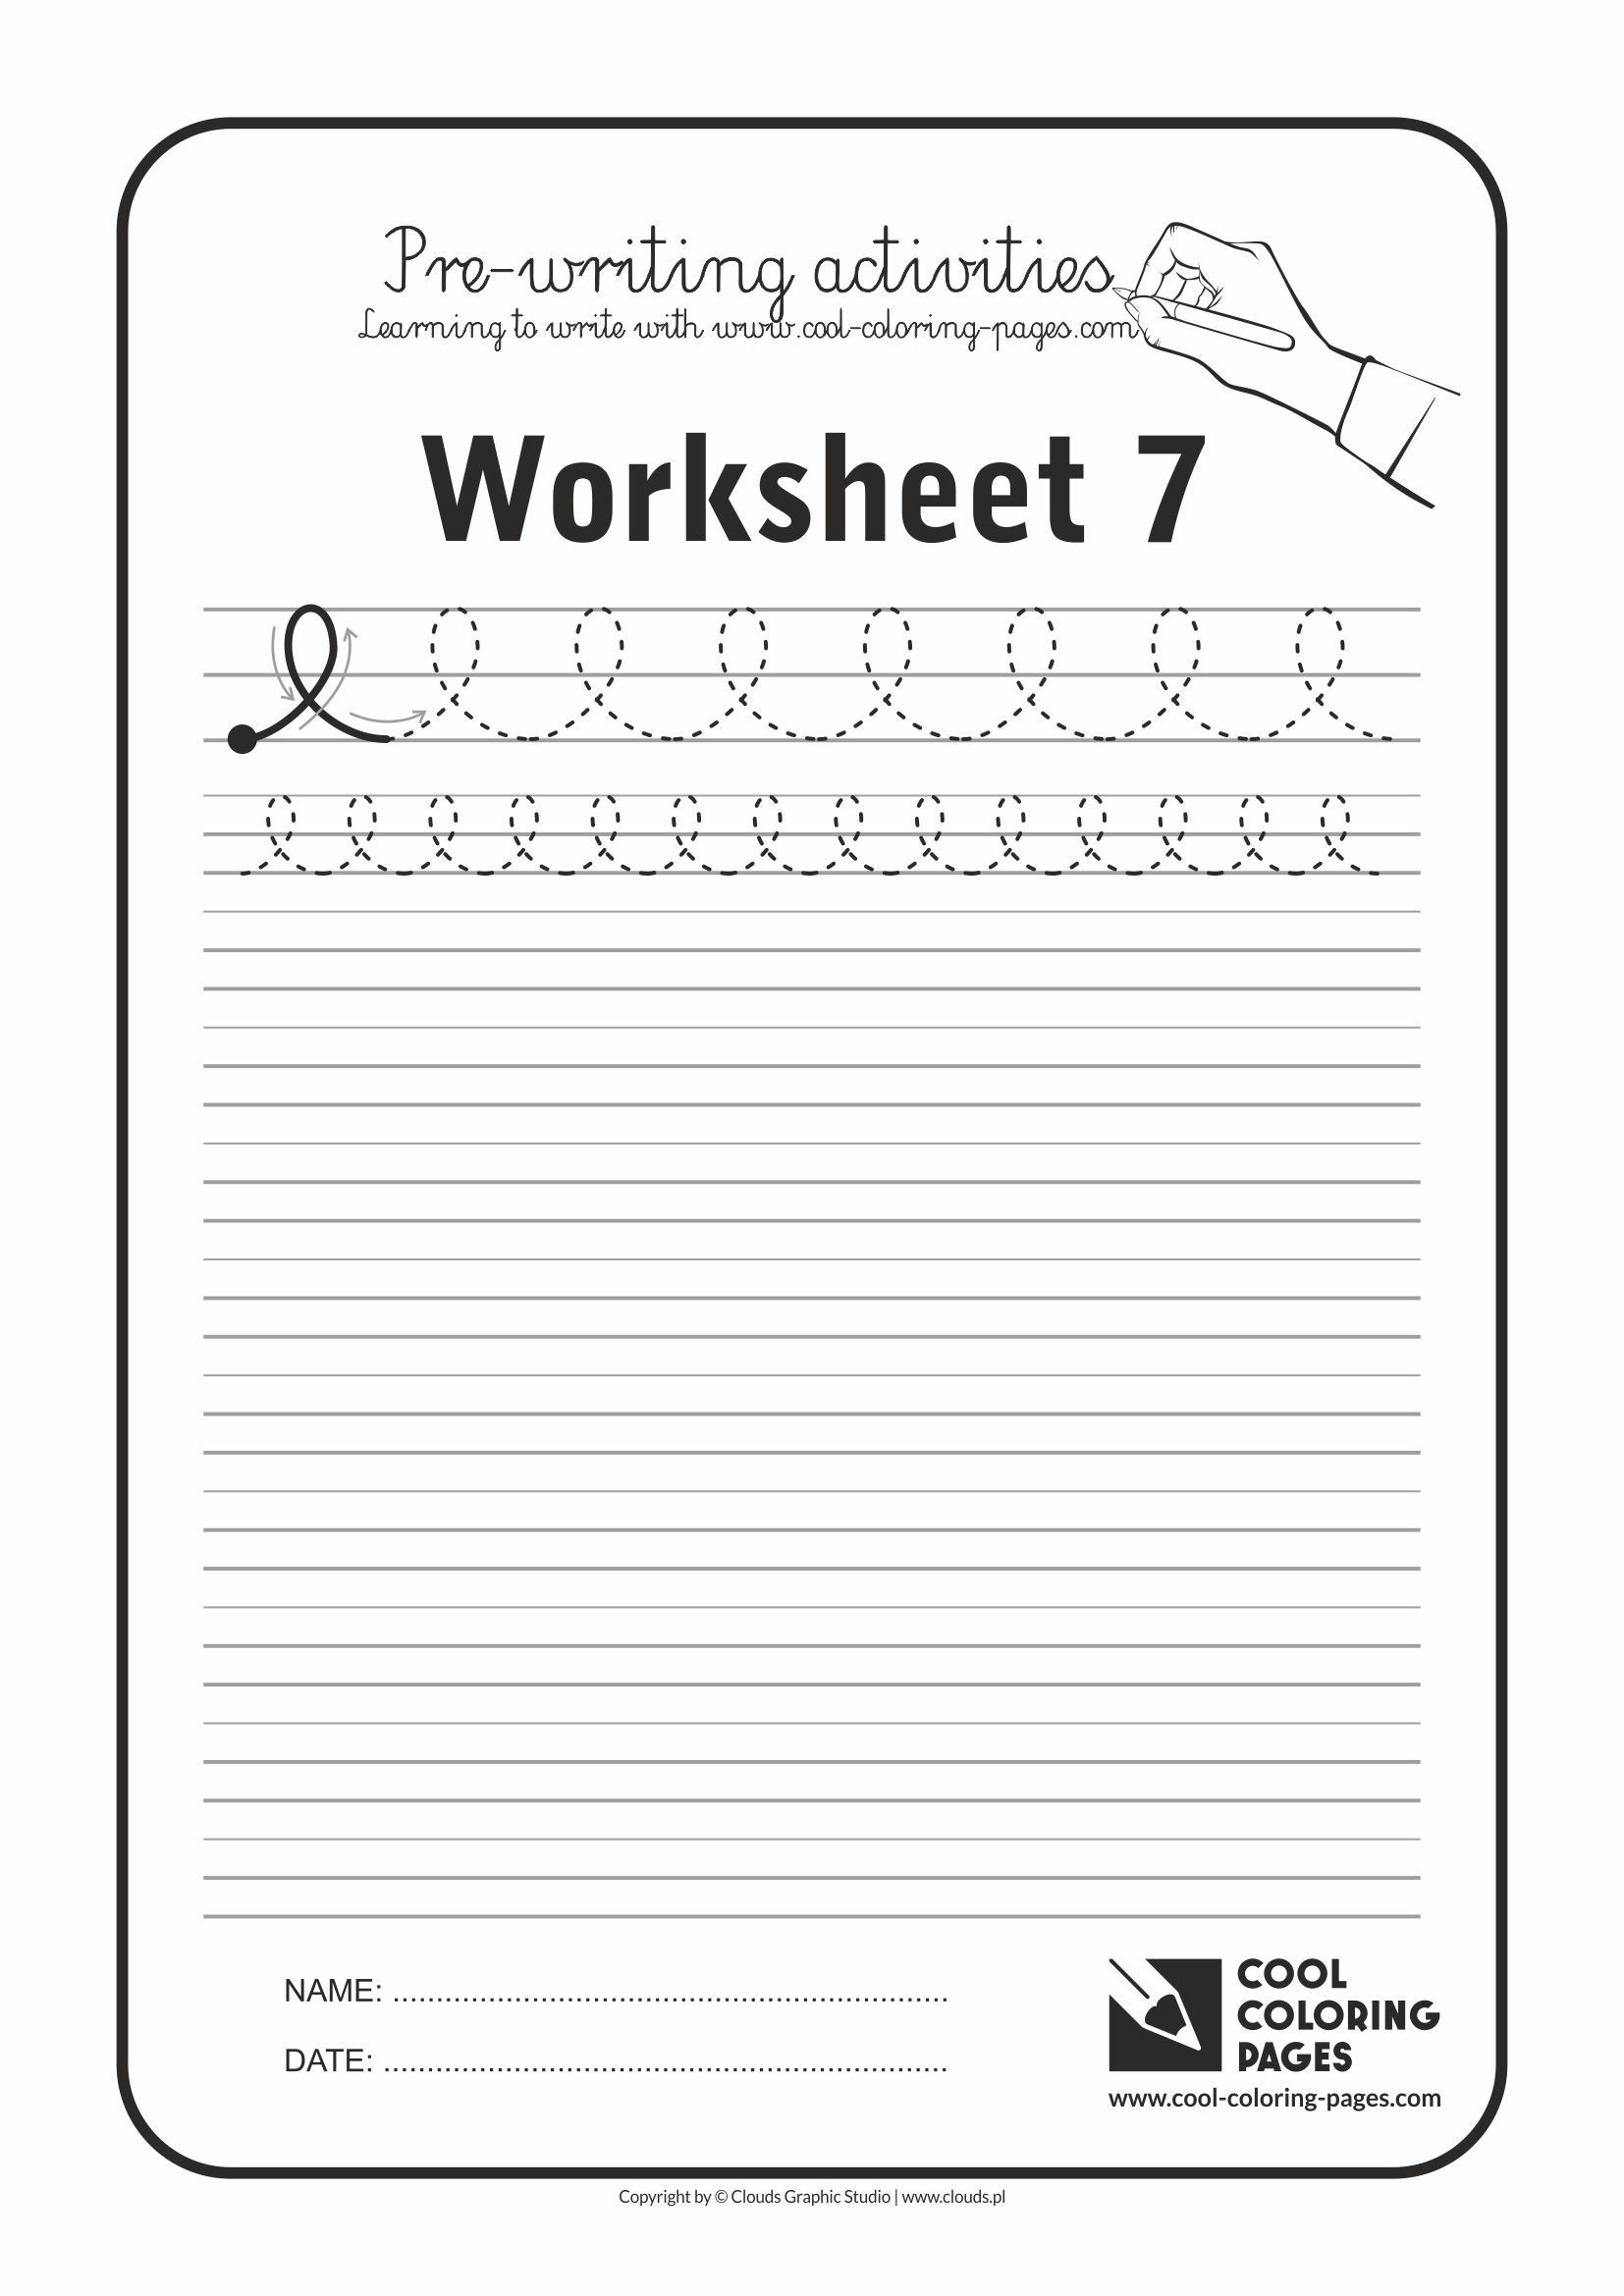 Cool Coloring Pages / Pre-writing activities / Worksheet no.7